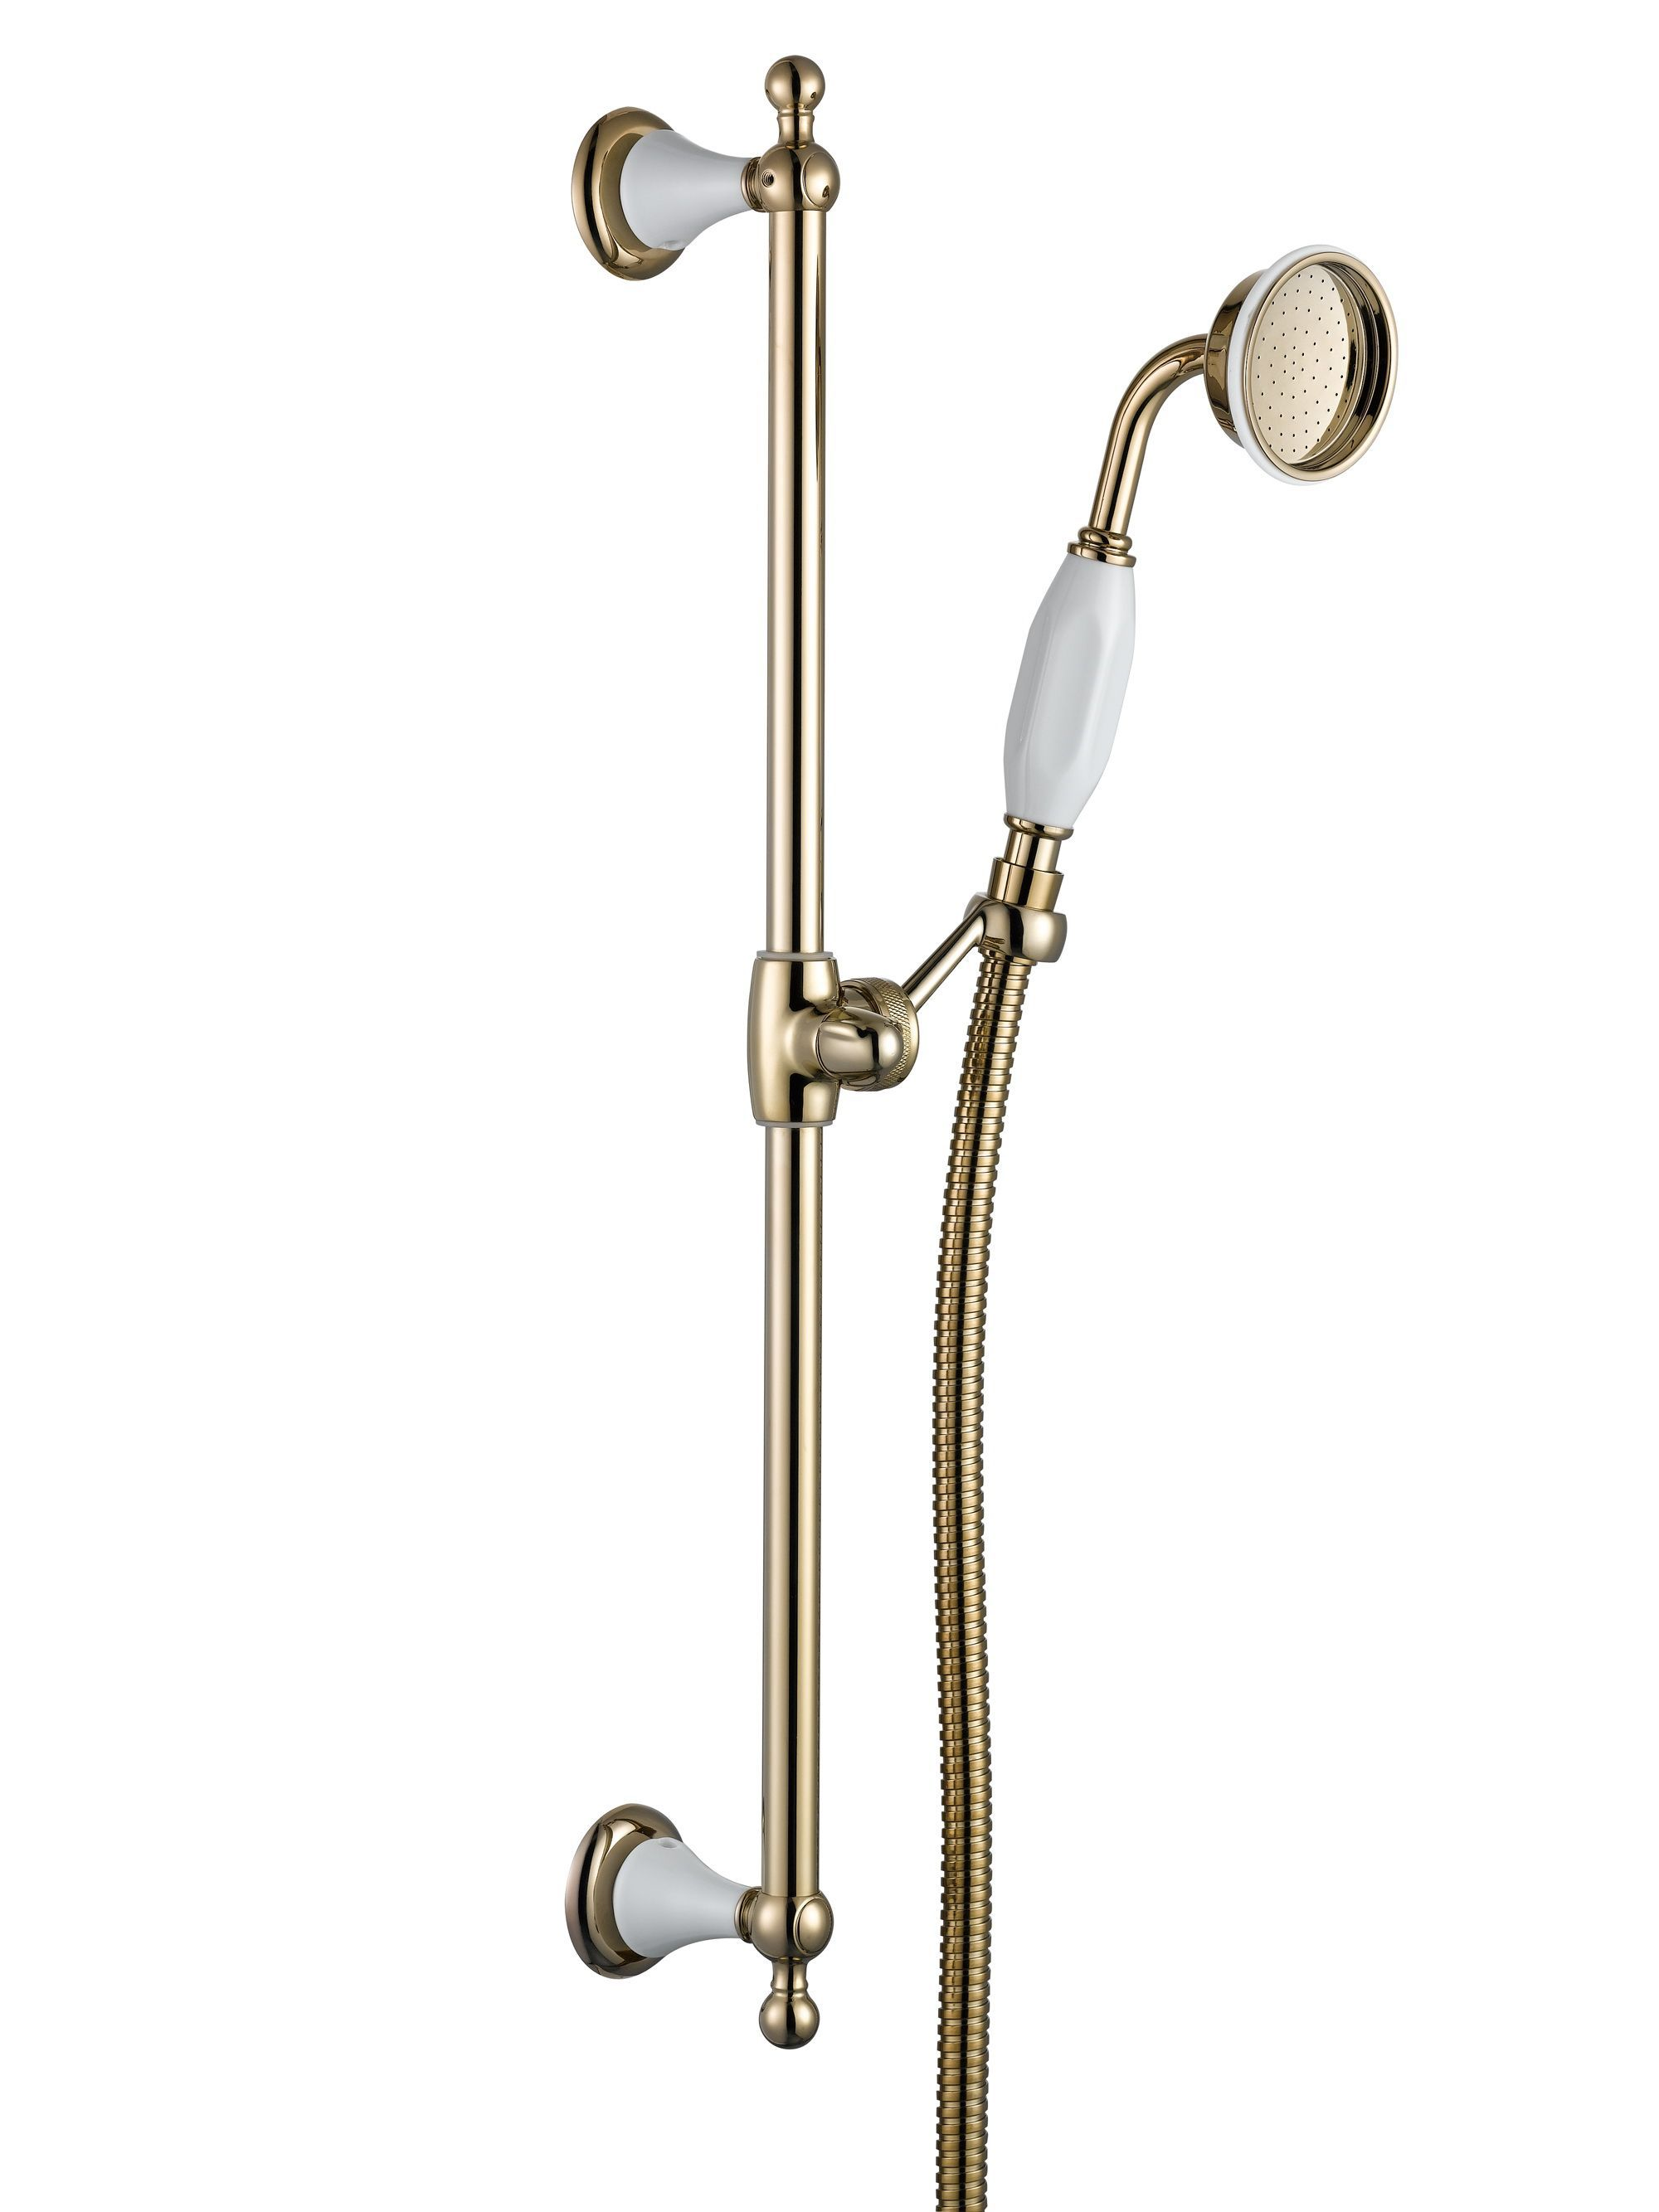 cooke lewis harlyn chrome bath shower mixer tap. Black Bedroom Furniture Sets. Home Design Ideas